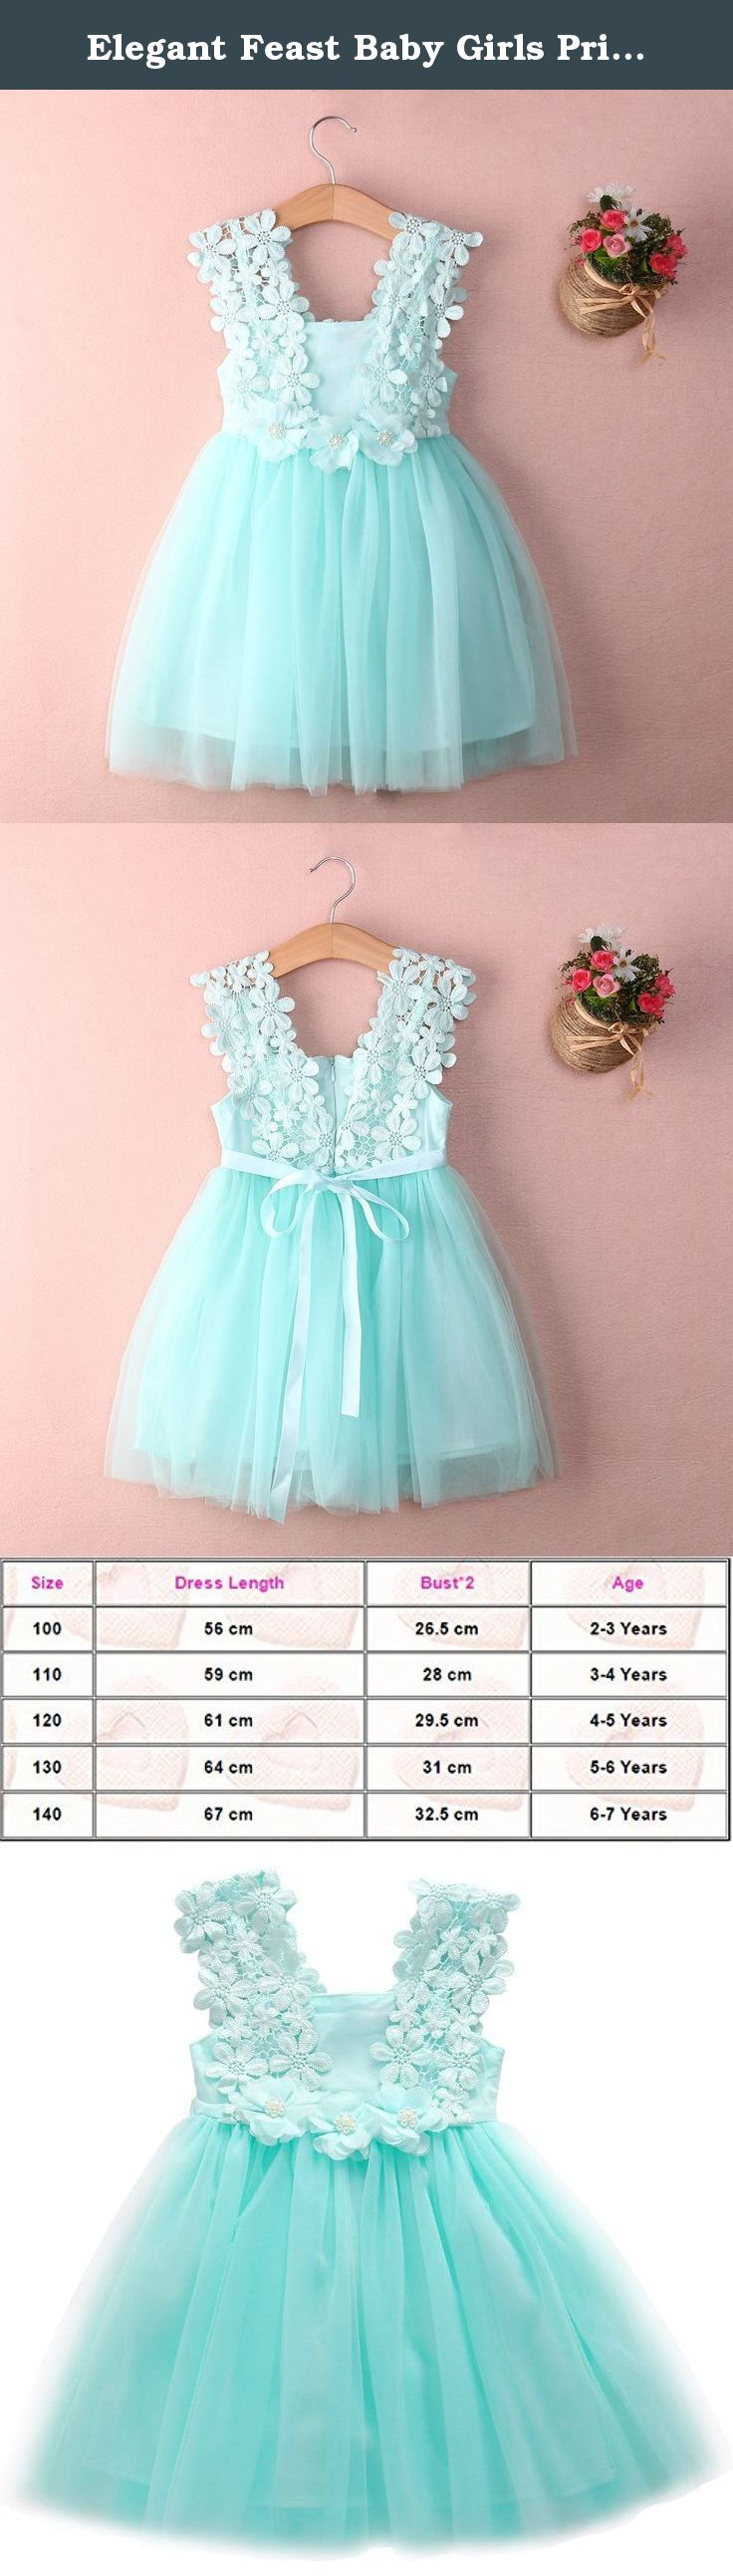 c83b048cd Elegant Feast Baby Girls Princess Lace Flower Tulle Tutu Gown Formal Party  Dress (2-3 Years, Blue). New in Fashion. Material: Lace Tulle. Dress ...